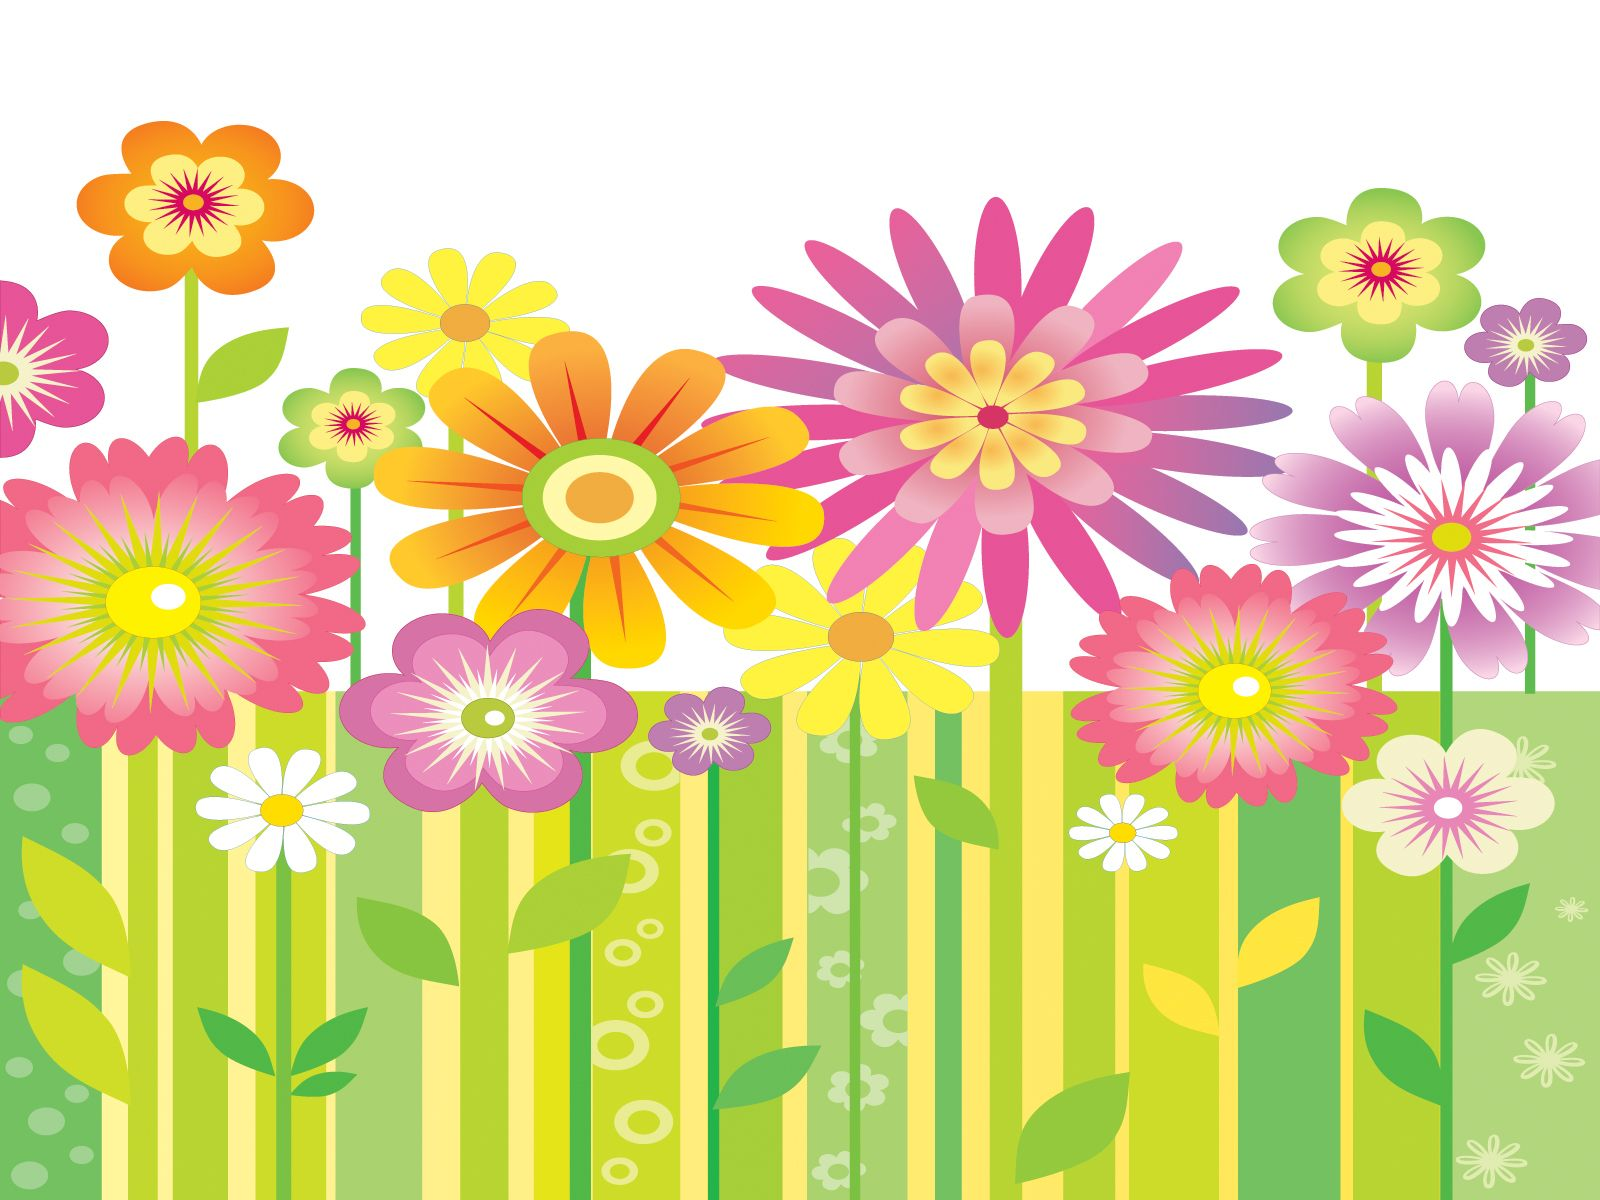 This Abstract Garden ppt template has a green background design